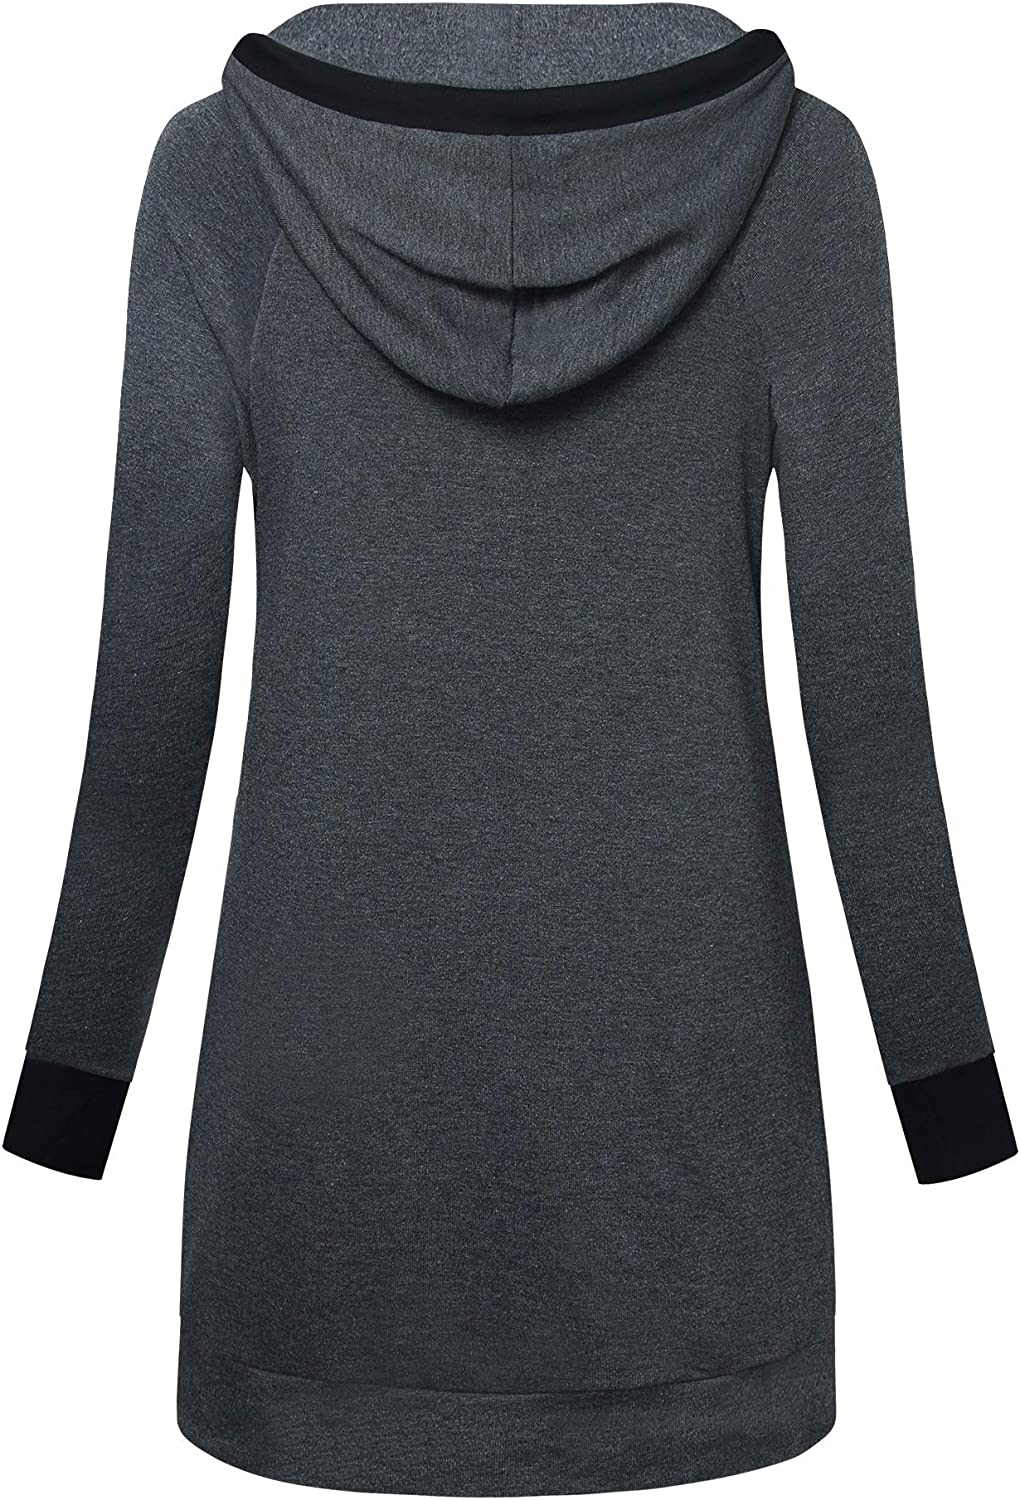 Vivilli Womens Long Sleeve Tunic Shirt Funnel Neck Casual Pullover Hoodie Top with Pocket